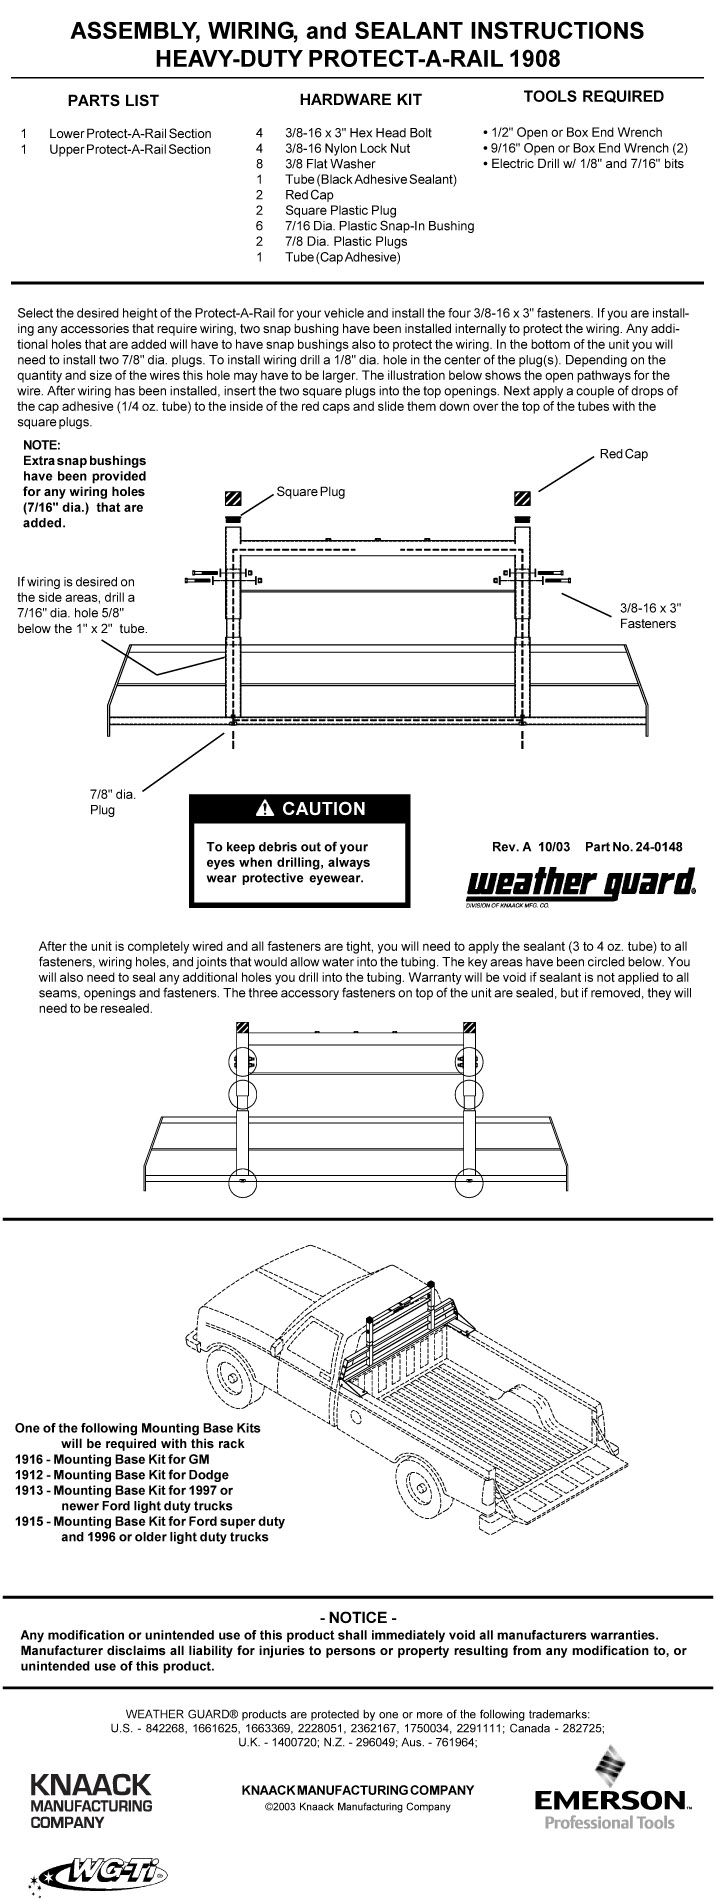 Weather Guard Cab Protector Installation Guide 1908